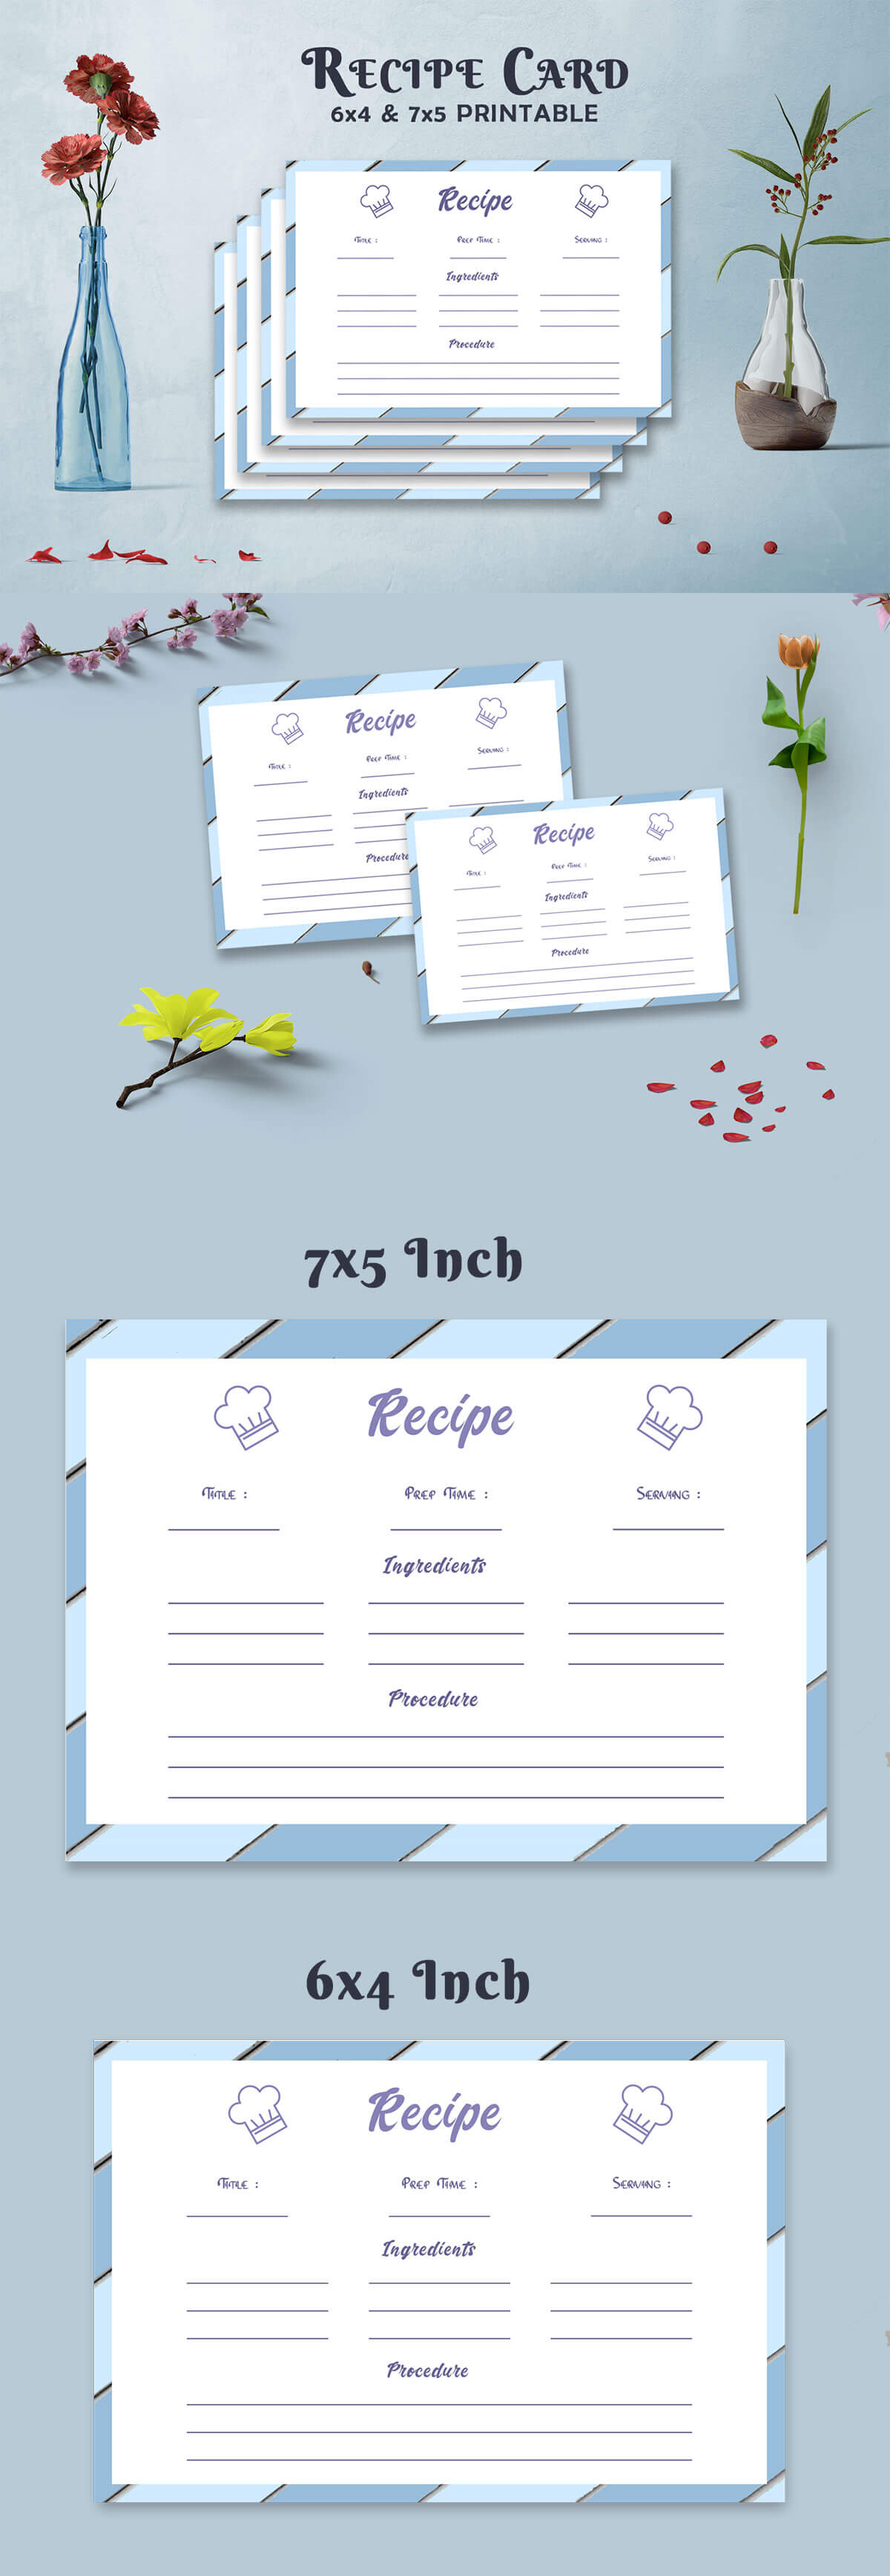 Free Recipe Card Printable Template V10